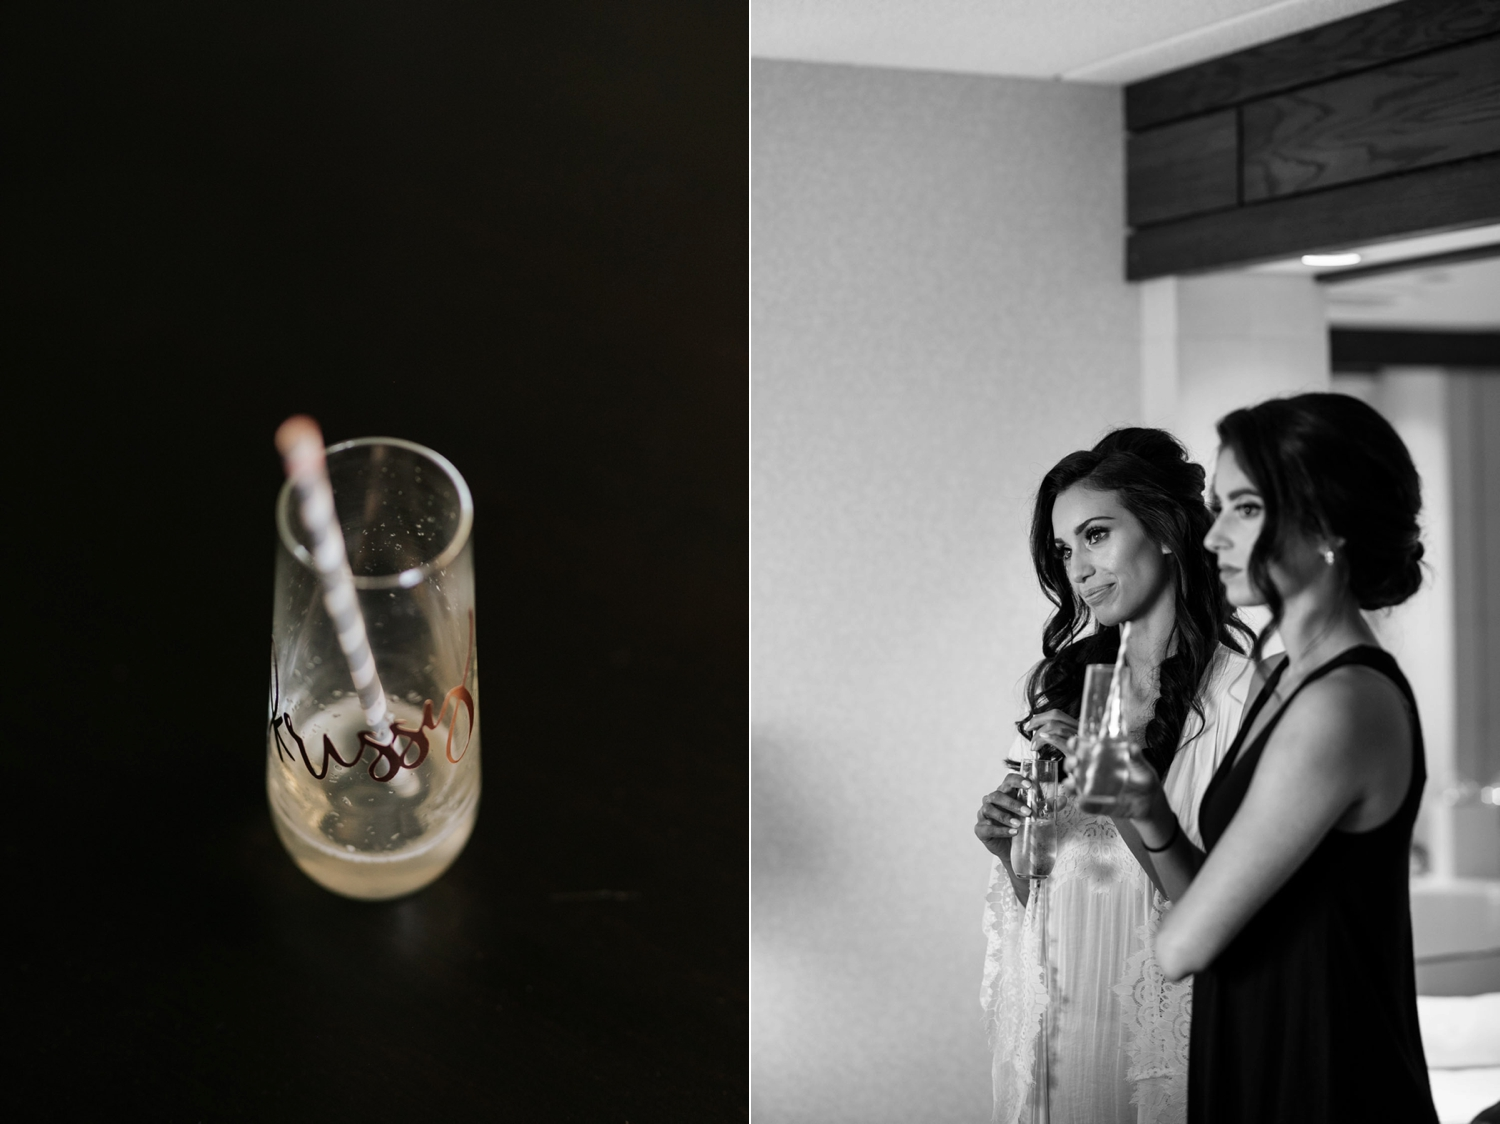 Personalised stemless champagne glasses for bride and bridesmaids getting ready photos before Newmarket Wedding at Madsen's Greenhouse